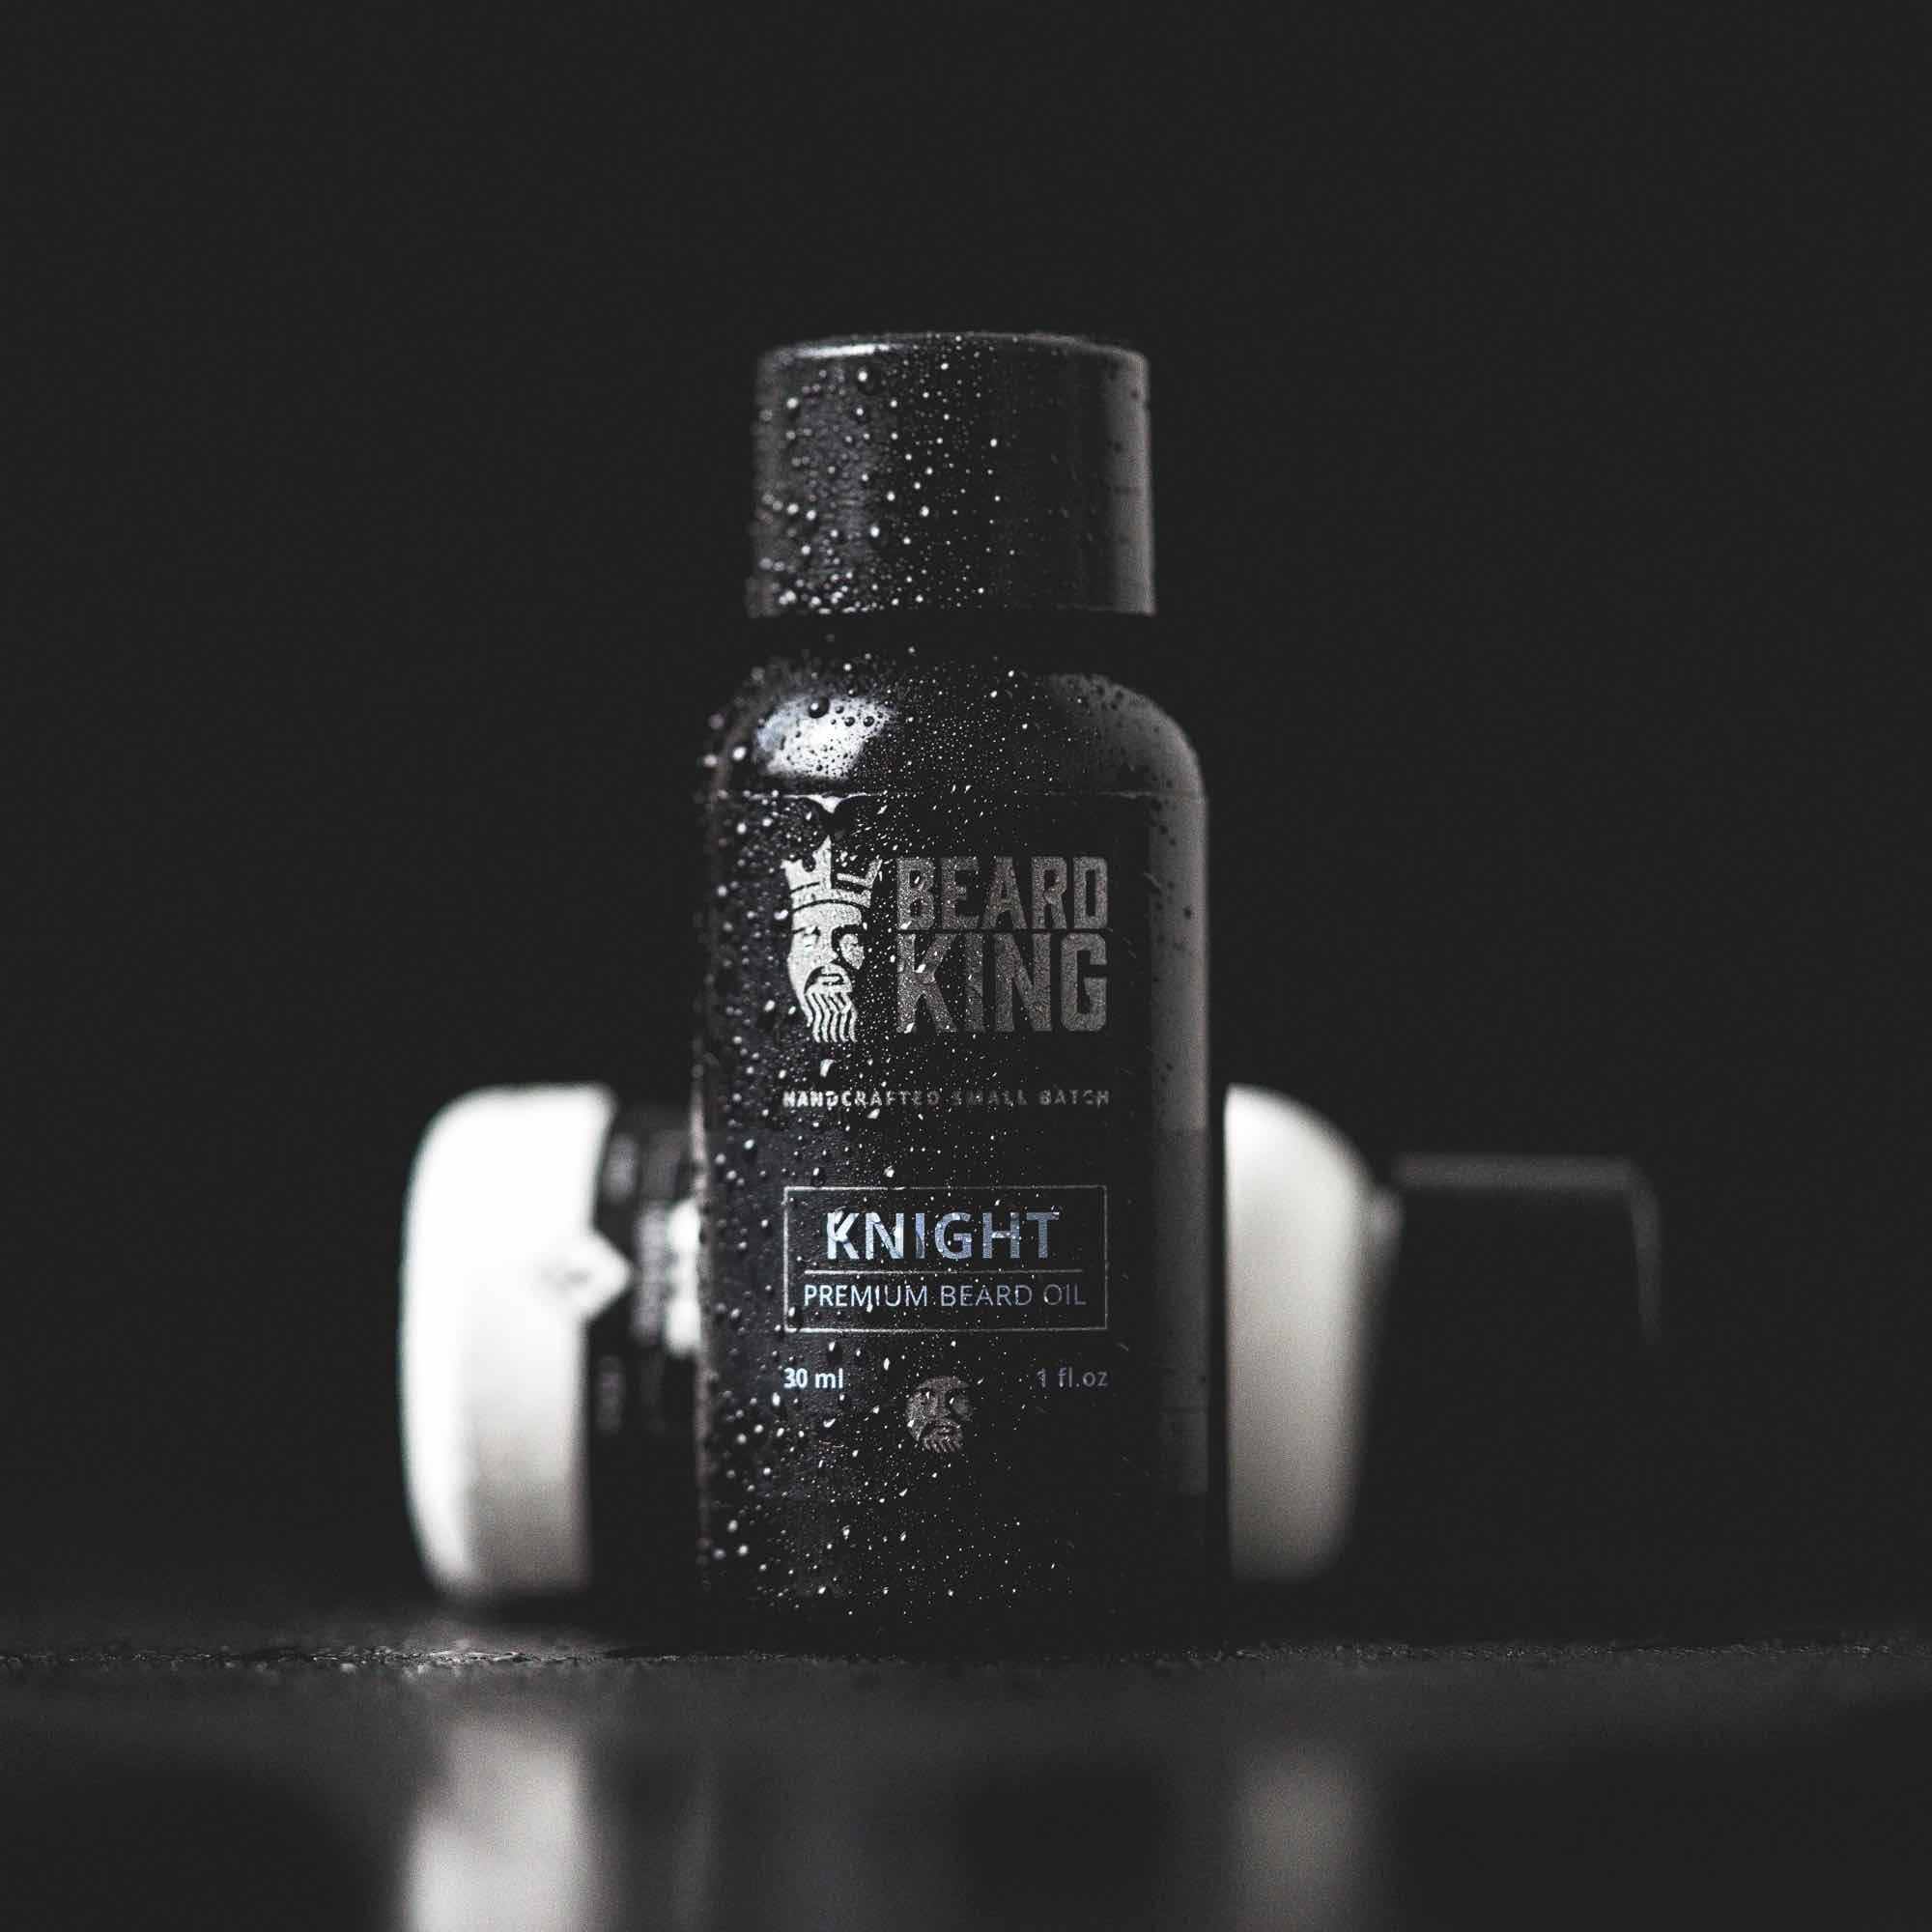 Beard King Package Photography